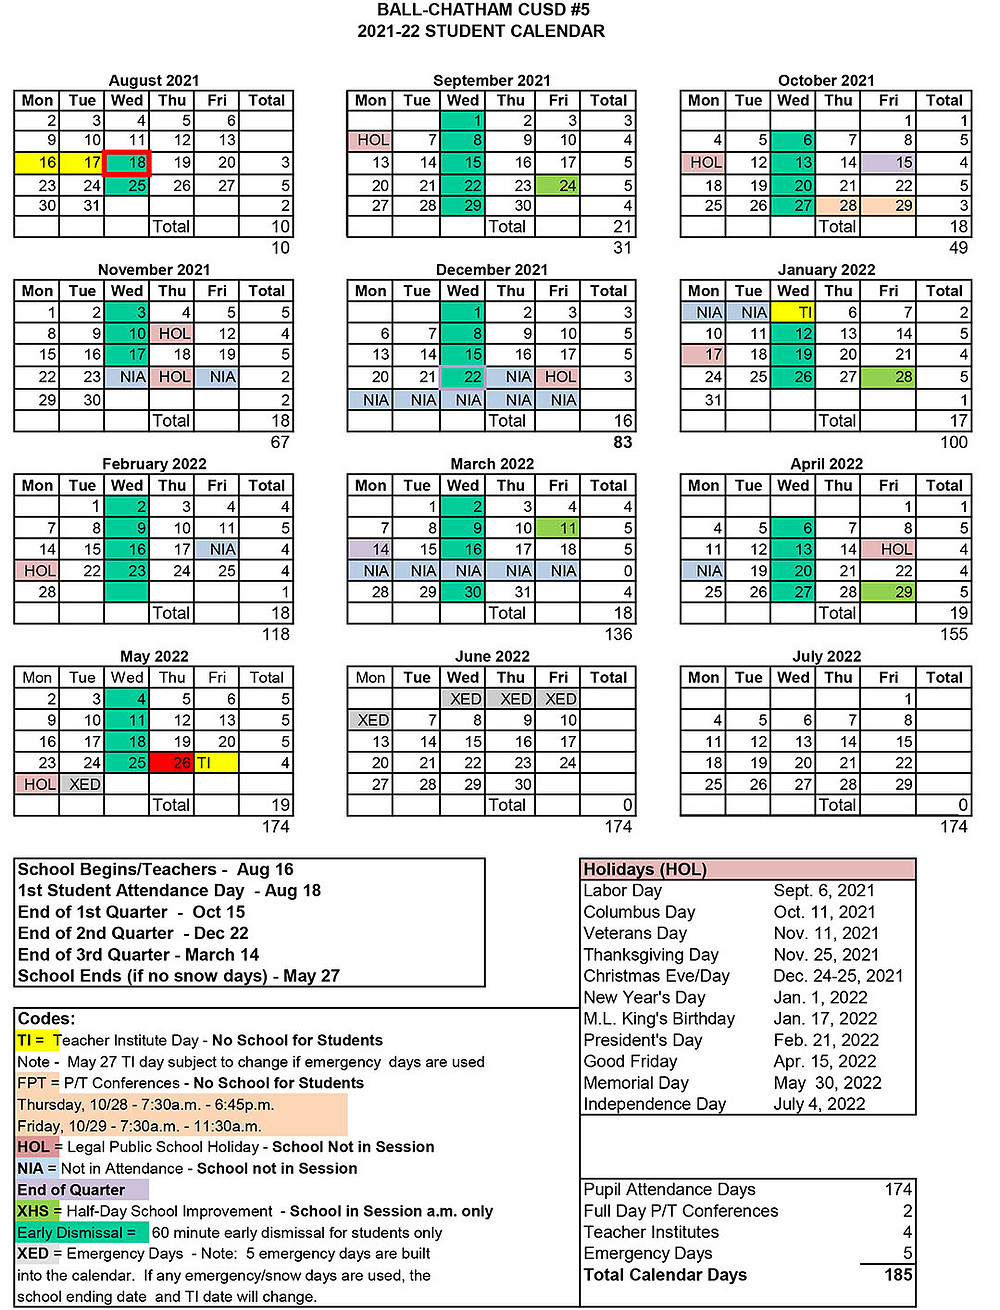 Board Of Education Approves Student Attendance Calendars